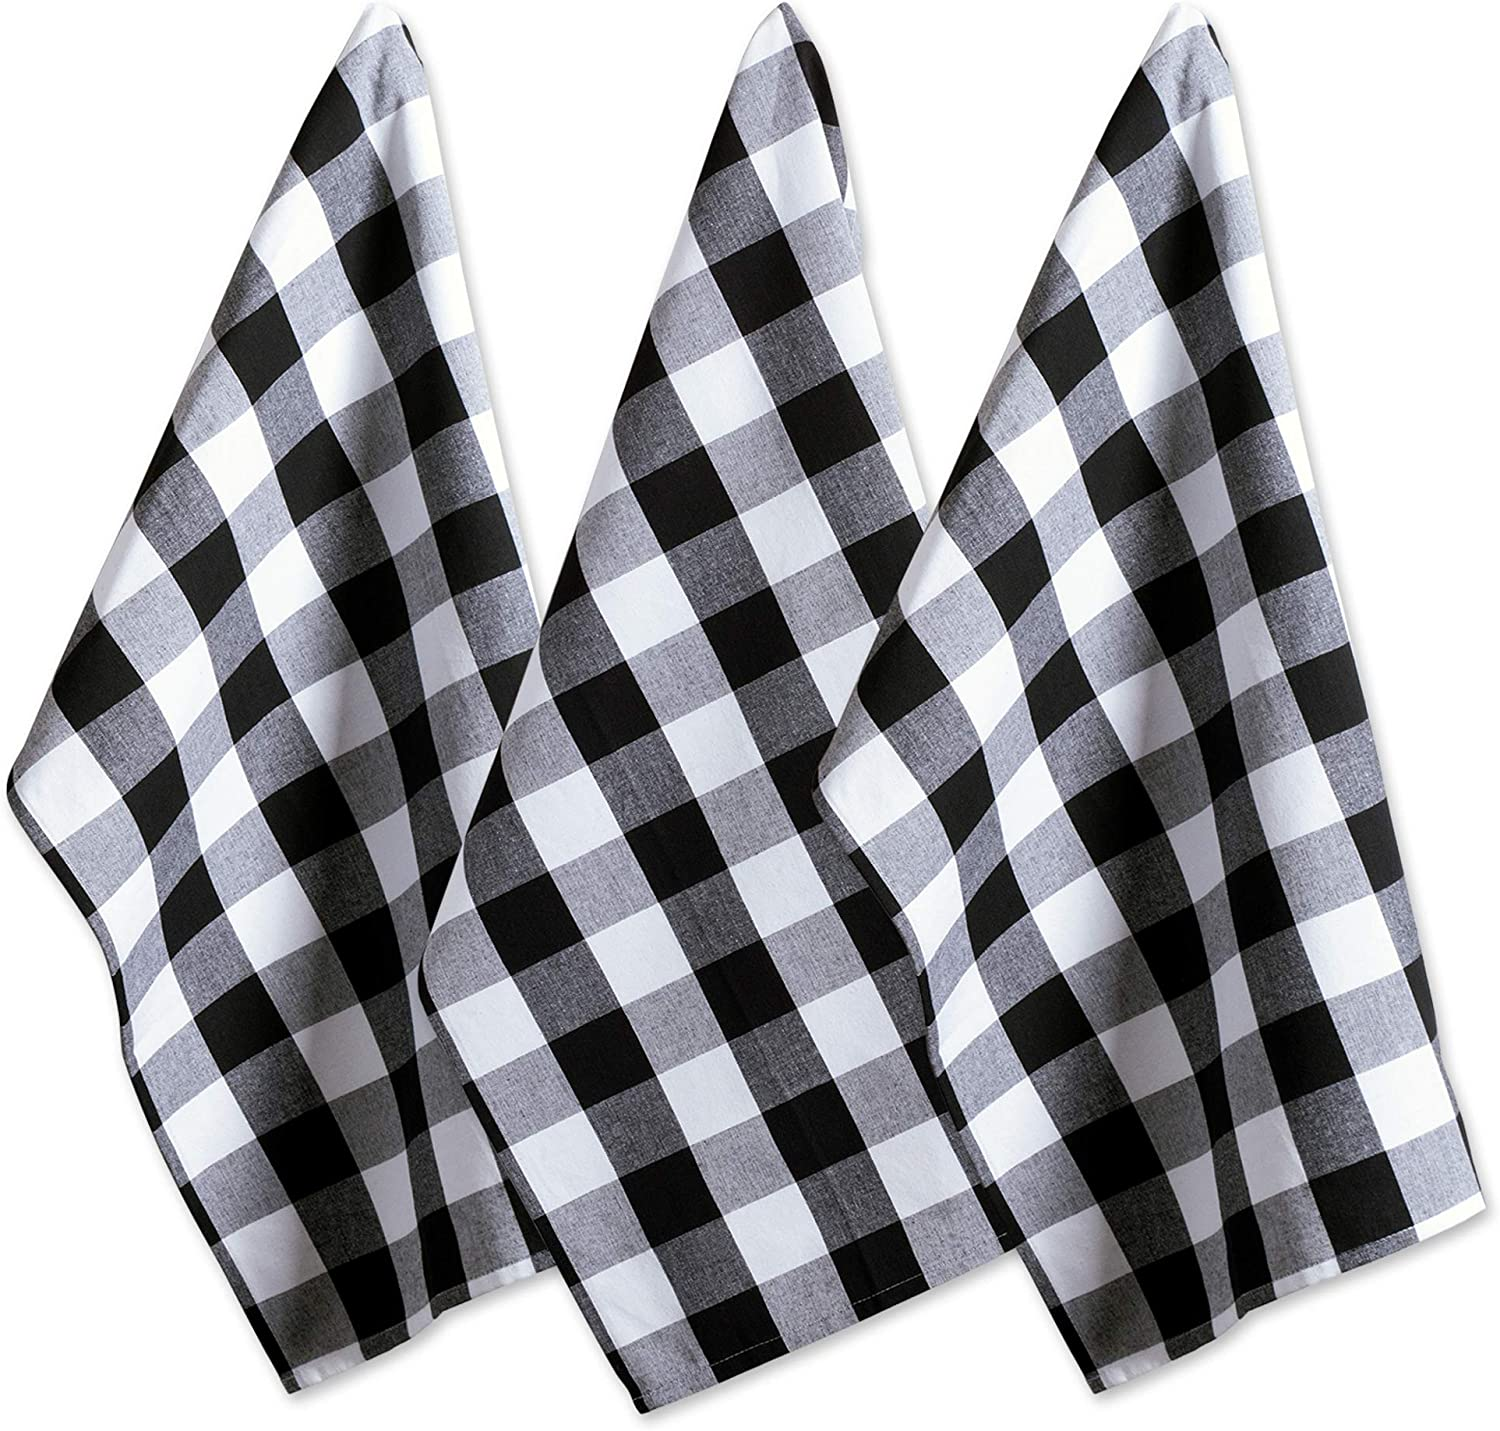 Black And White Checkered Kitchen Towels Cheaper Than Retail Price Buy Clothing Accessories Lifestyle Products For Women Men